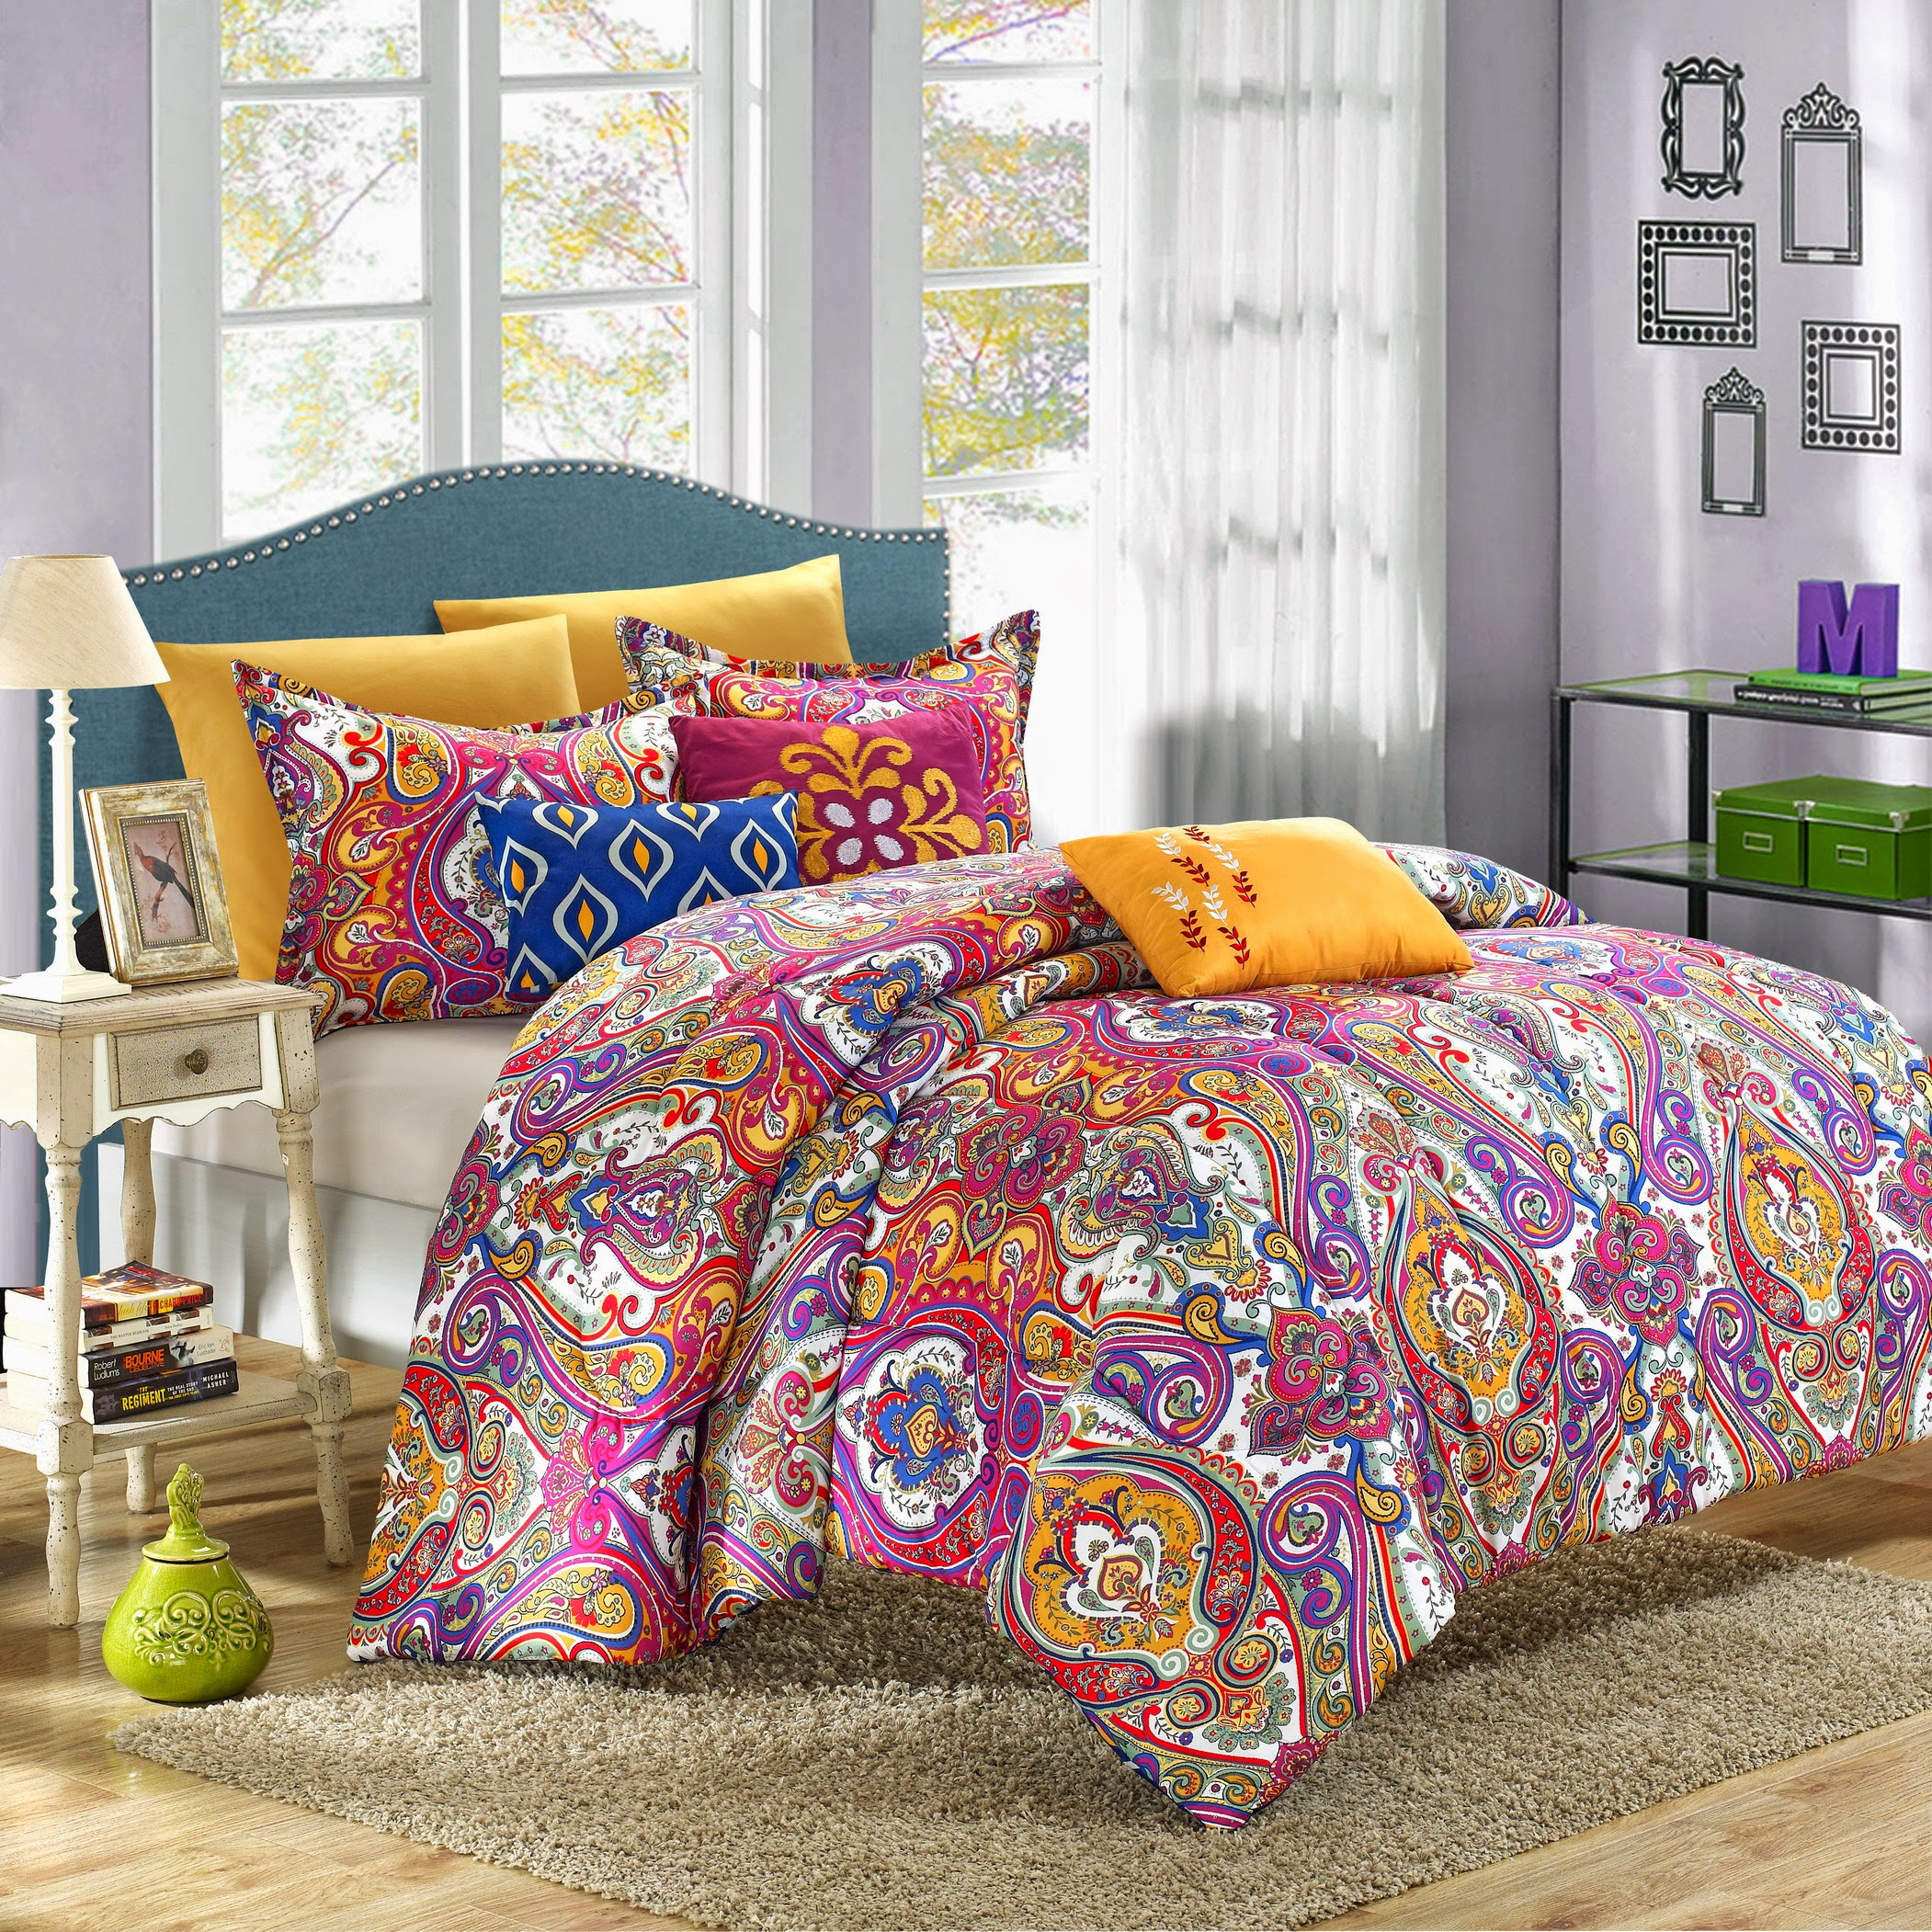 Chic Home Bombay 12-piece Reversible Bed-in-a-Bag with Sheet Set